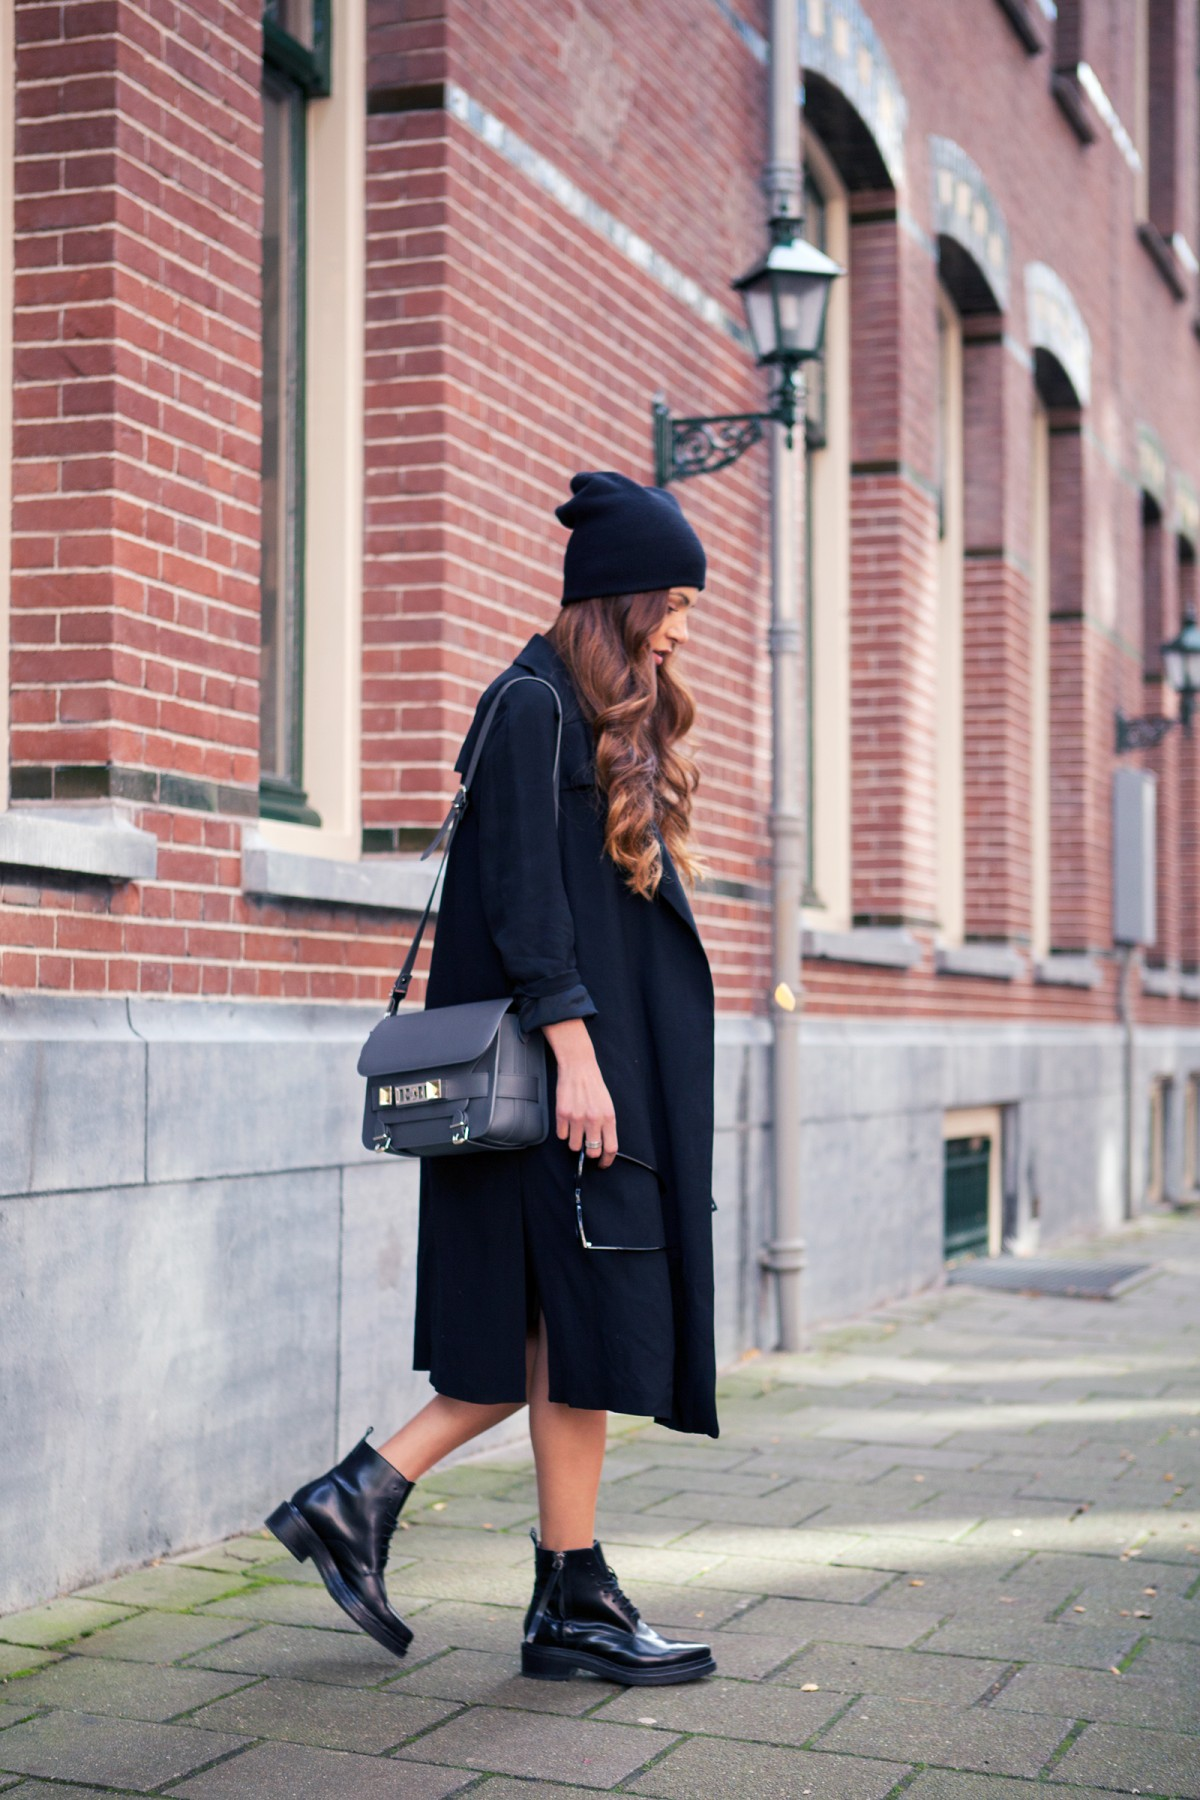 Negin Mirsalehi is wearing a long black flowy coat from Zara and the beanie is from Urban Outfitters